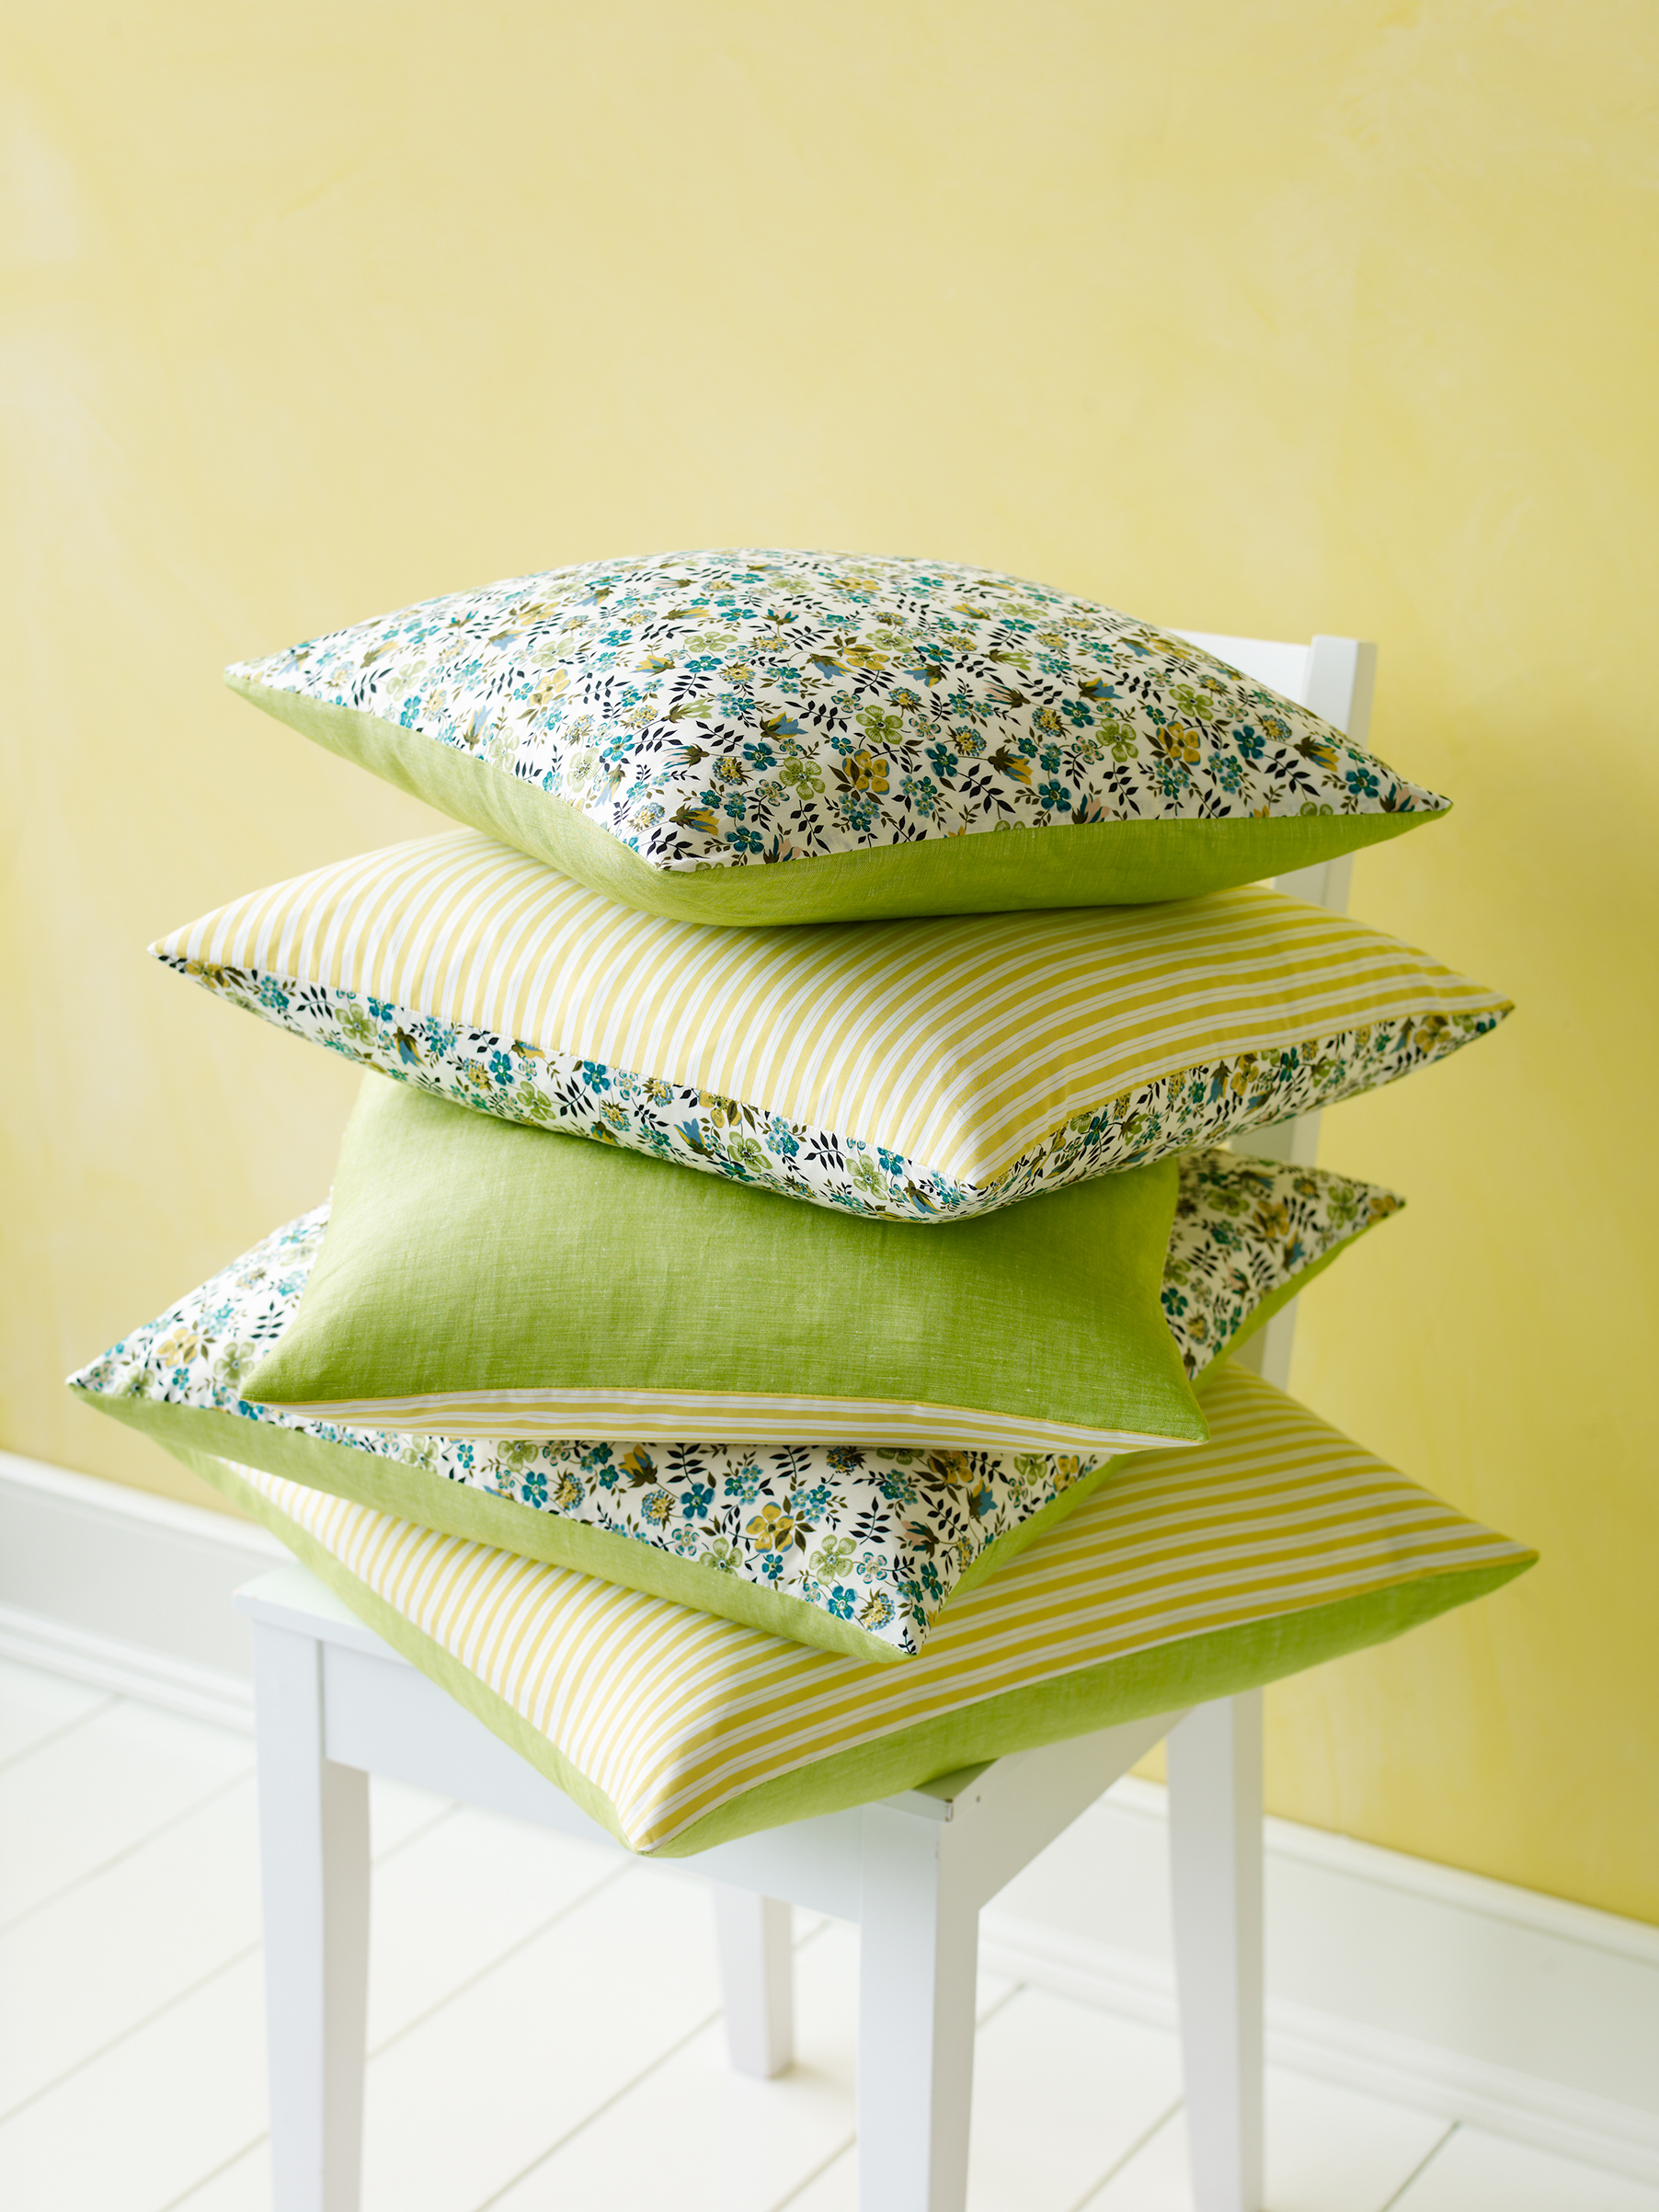 With reversible cushion covers that mix solids, stripes and florals, you can change up your d?cor all summer long.